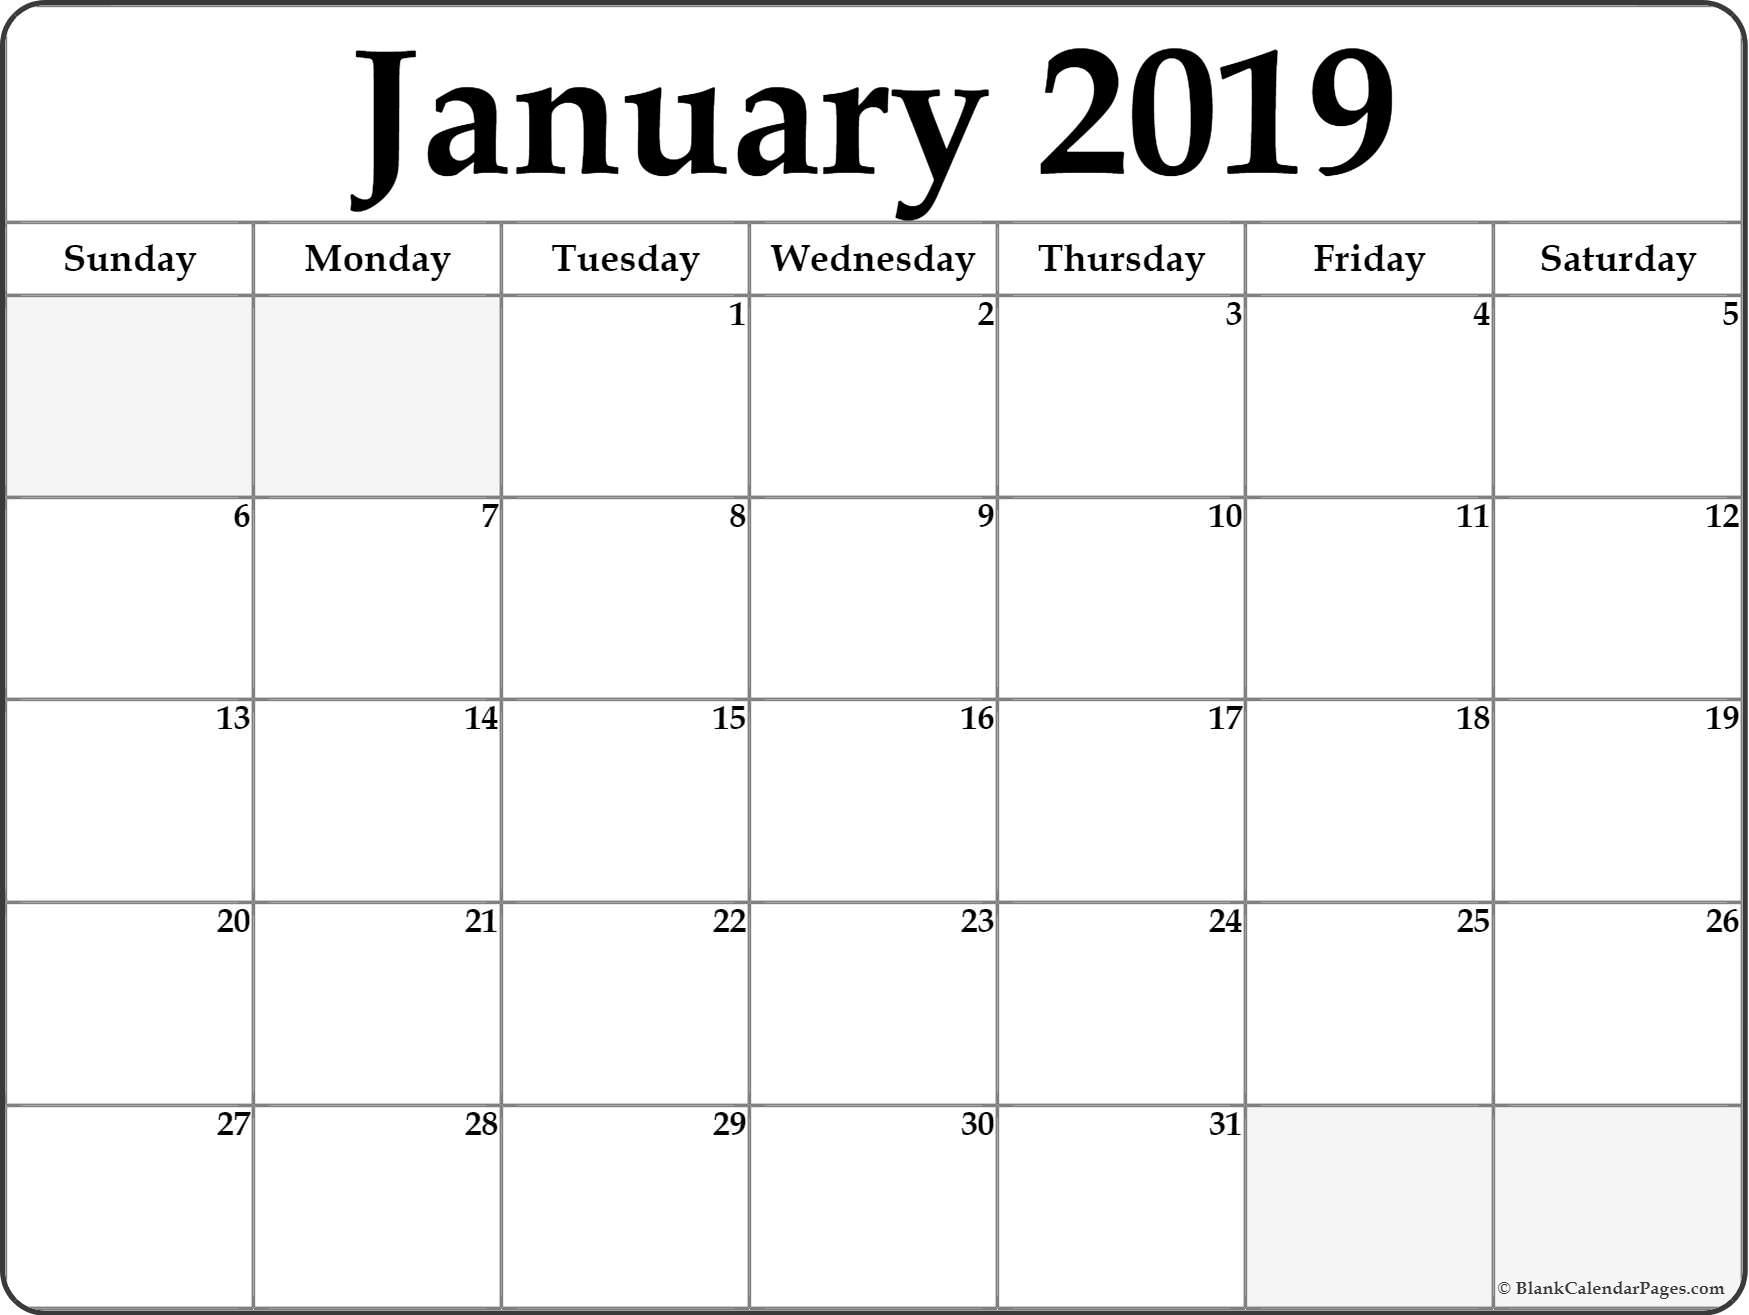 January 2019 Blank Calendar . January 2019 Calendar Printable regarding Blank Printable Calendar Pages Aug